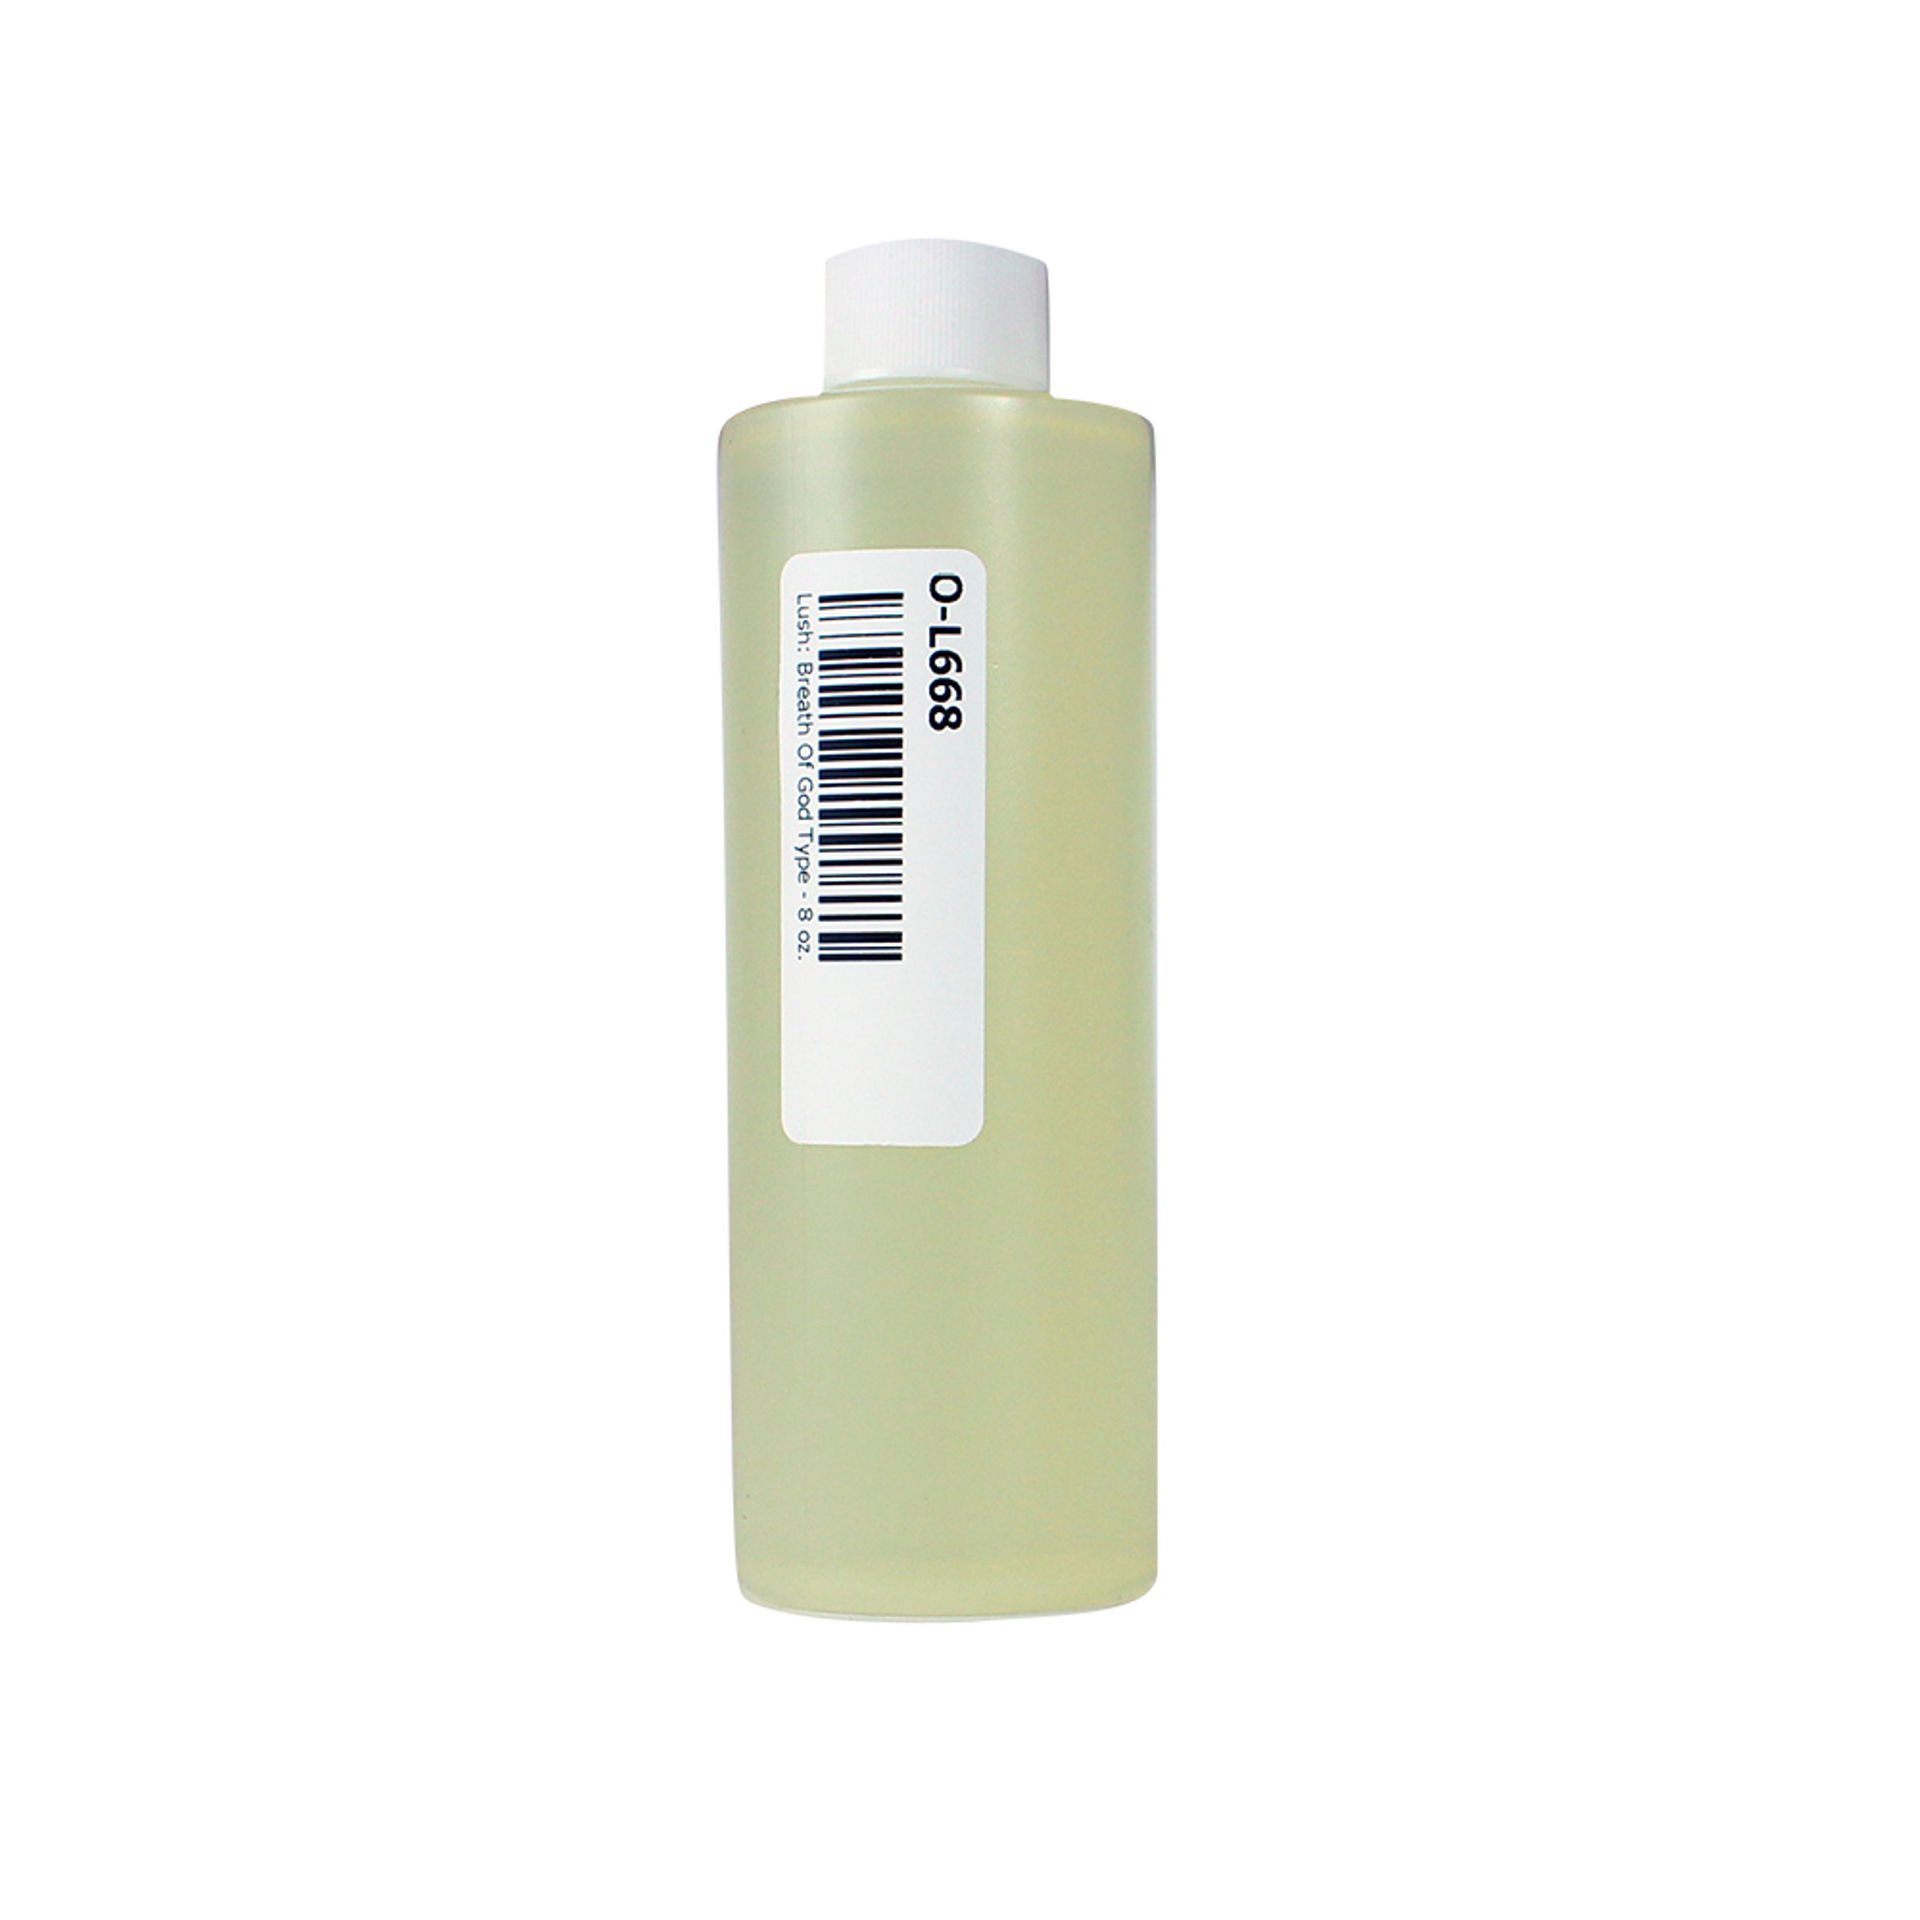 Picture of Lush: Breath Of God Type - 8 oz.